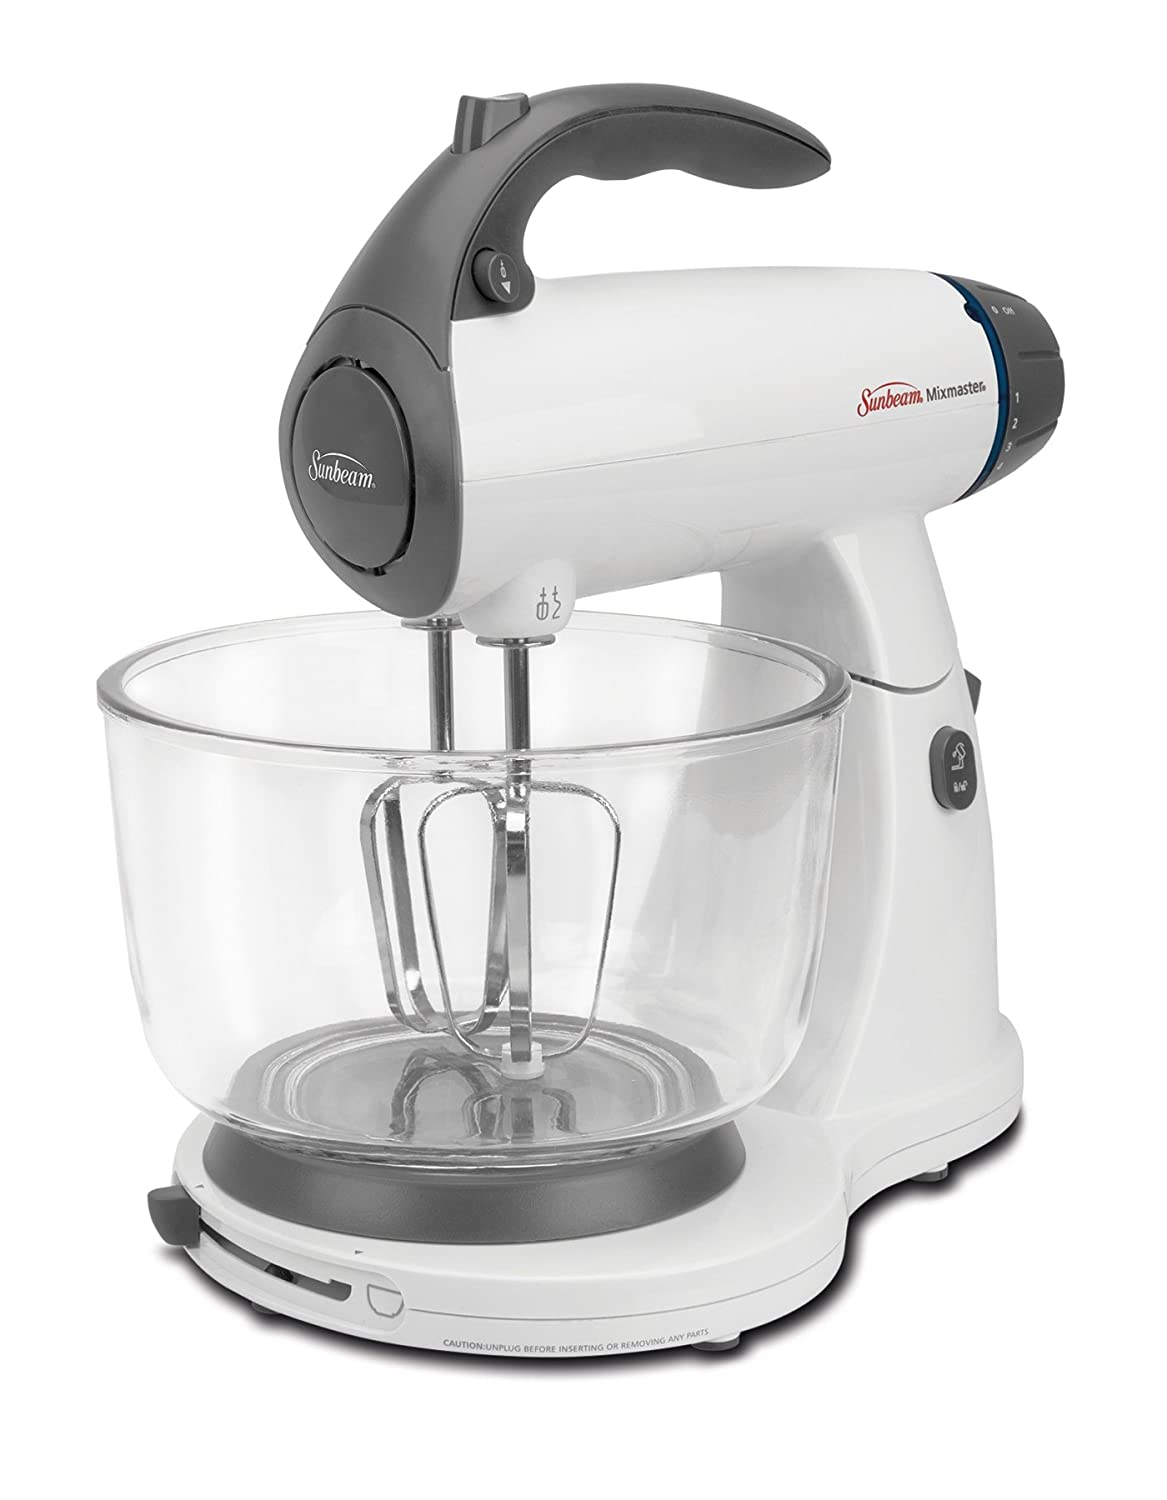 Sunbeam 2371 MixMaster Stand Mixer, White